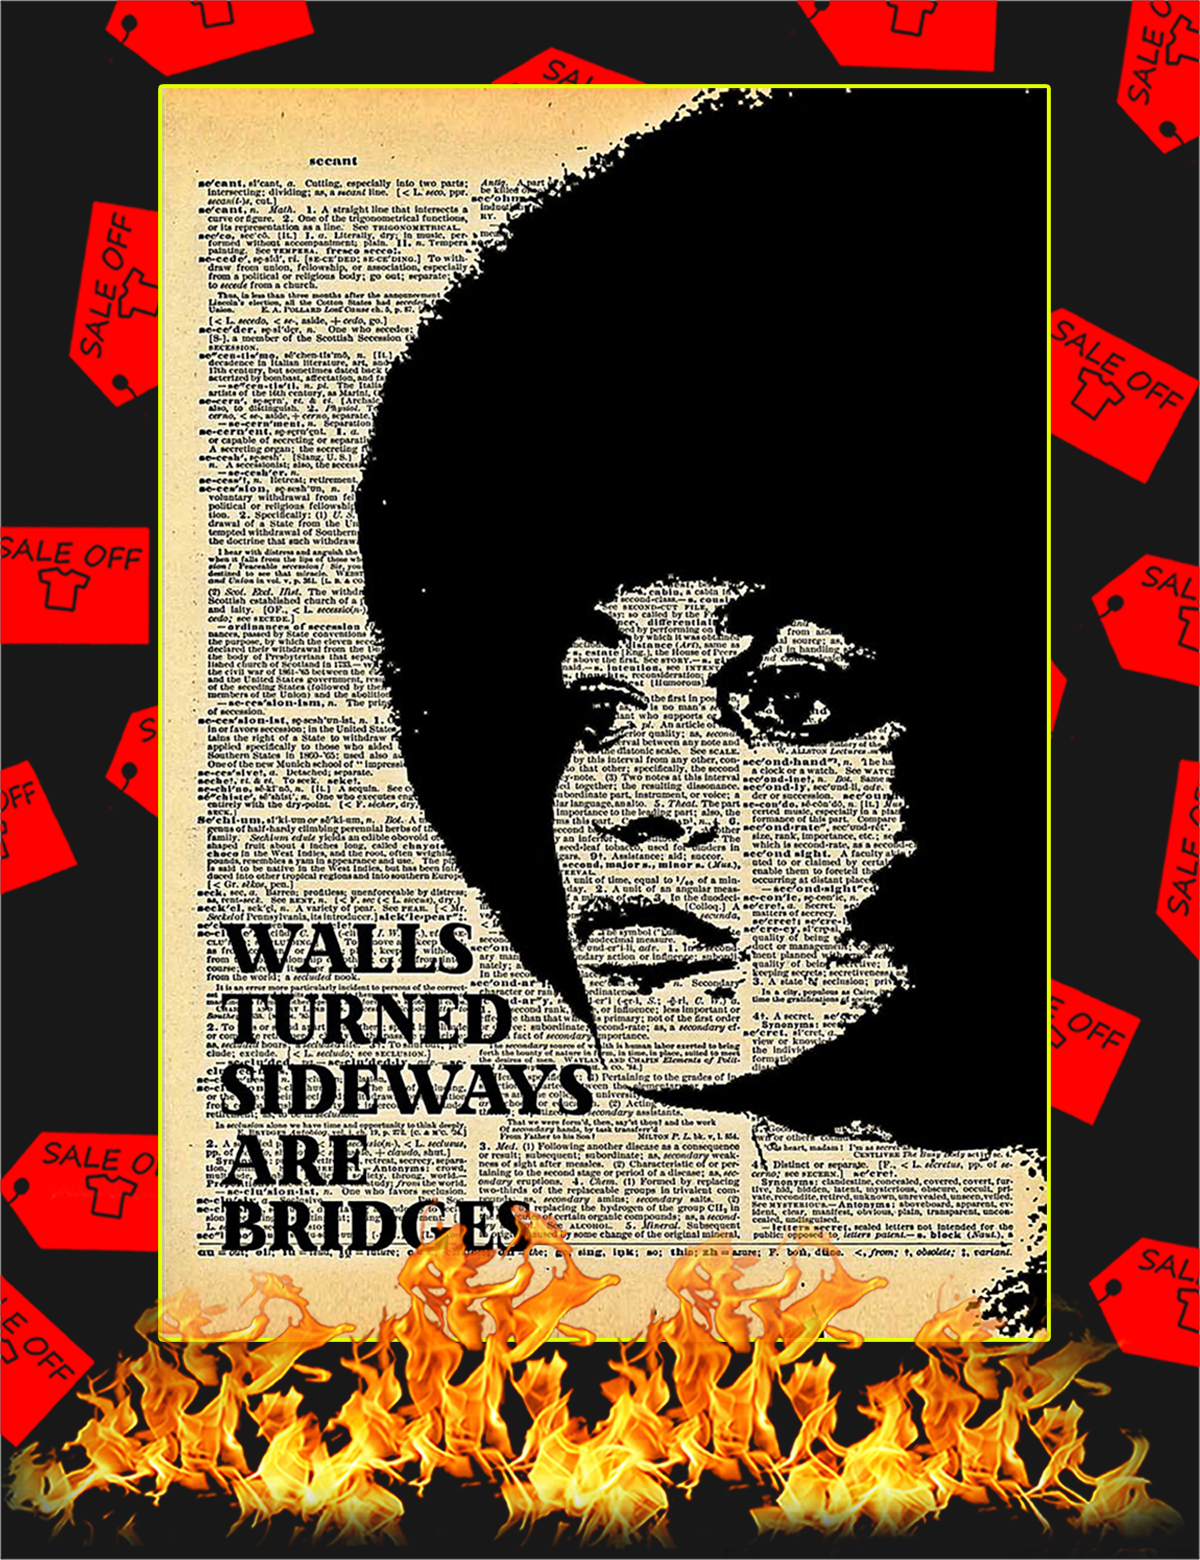 Angela Davis Walls turned sideways are bridges poster - A1